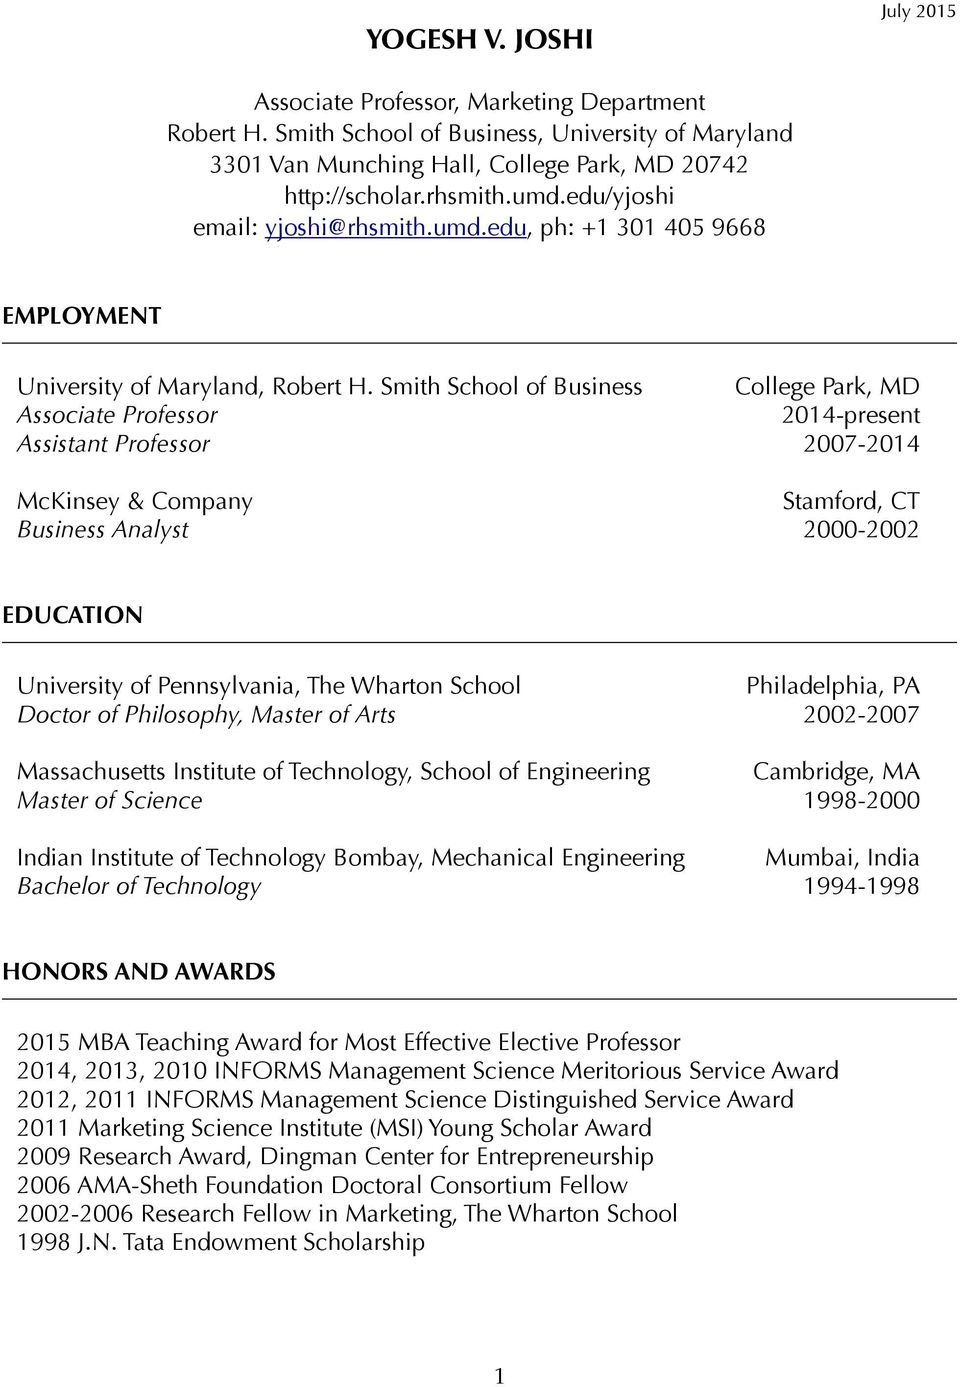 Smith School of Business College Park, MD Associate Professor 2014-present Assistant Professor 2007-2014 McKinsey & Company Stamford, CT Business Analyst 2000-2002 EDUCATION University of